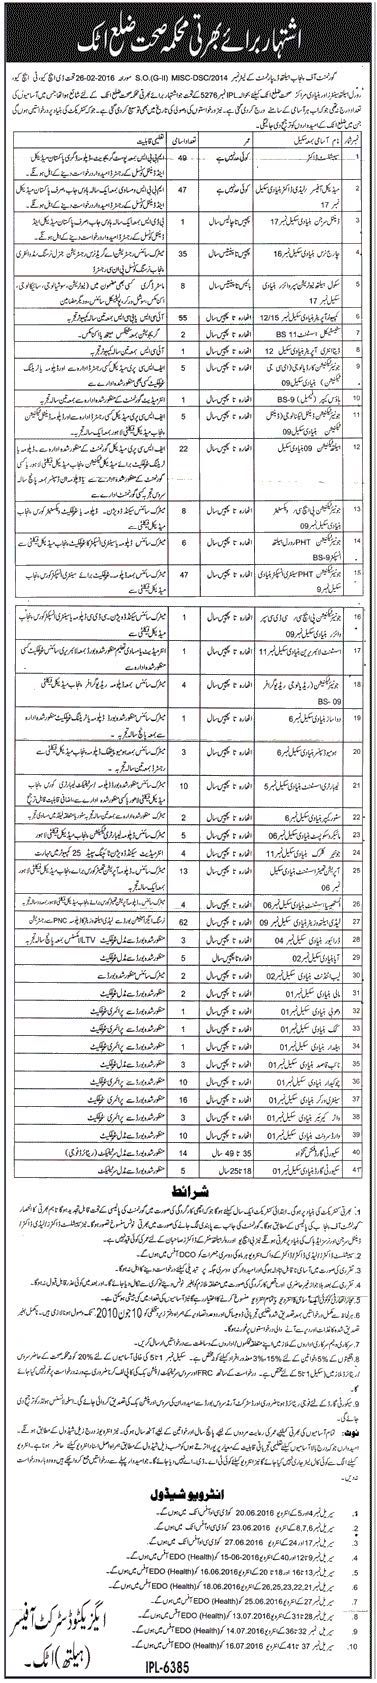 Punjab Health Department District Attock Jobs 2016